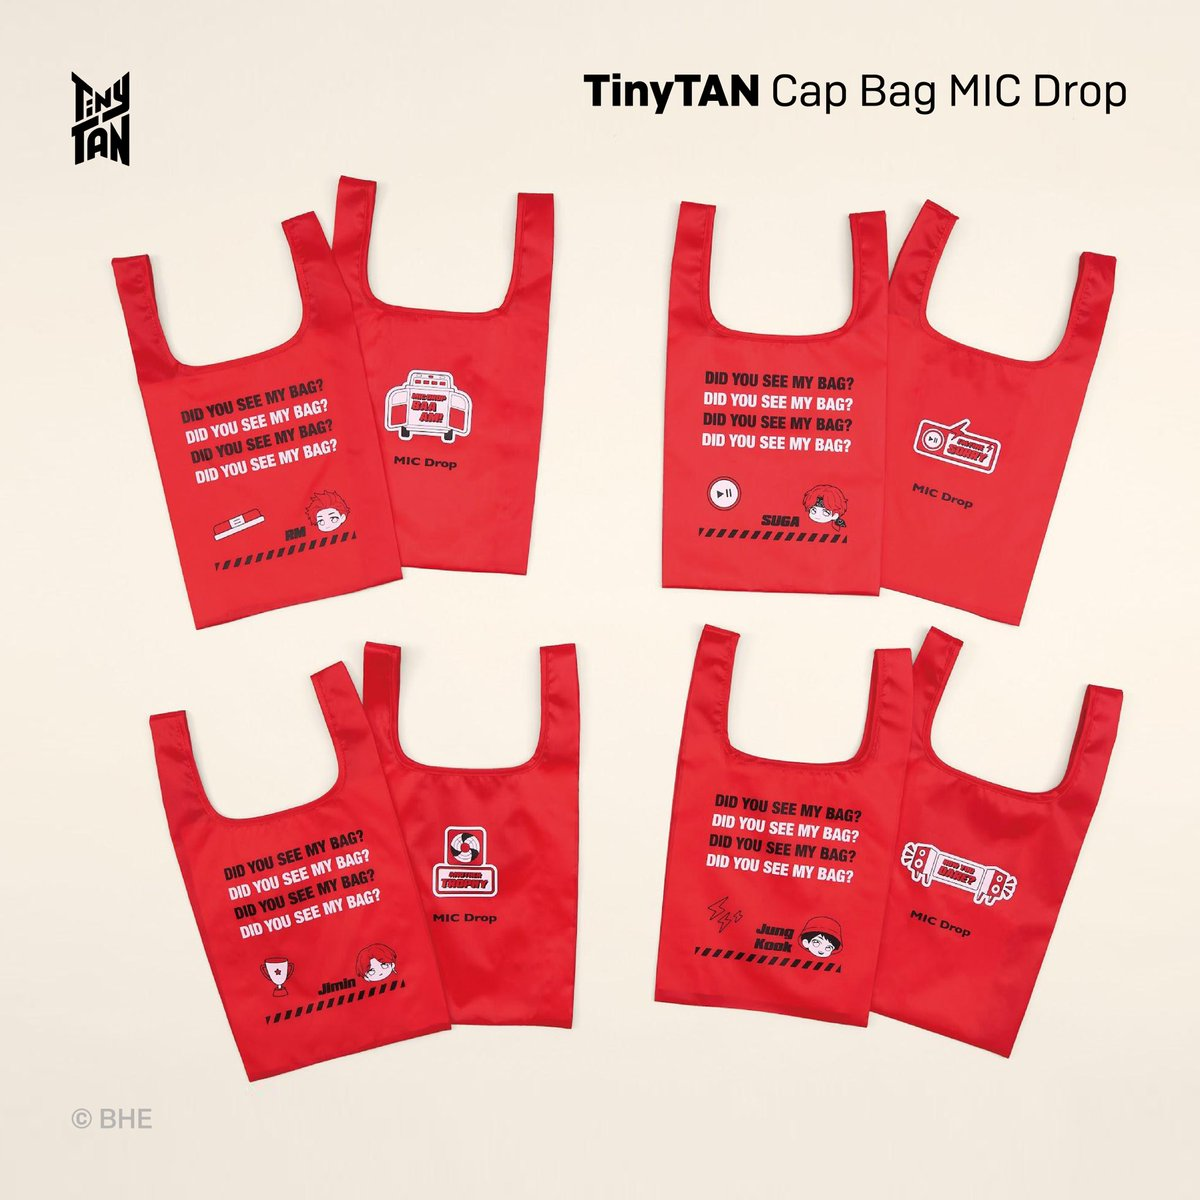 [February 2021] Newly Launched Licensed Products! TinyTAN @tartsPR Cap Bags available in Japan